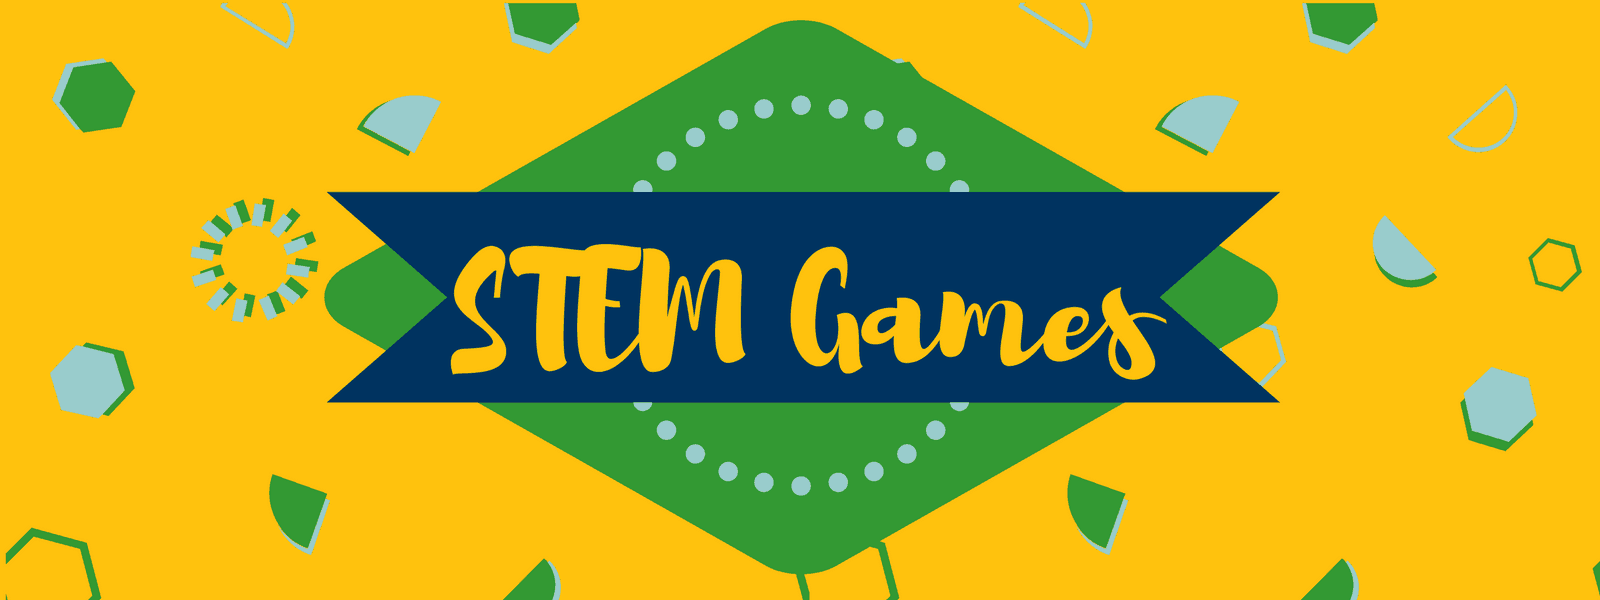 STEM Games Header